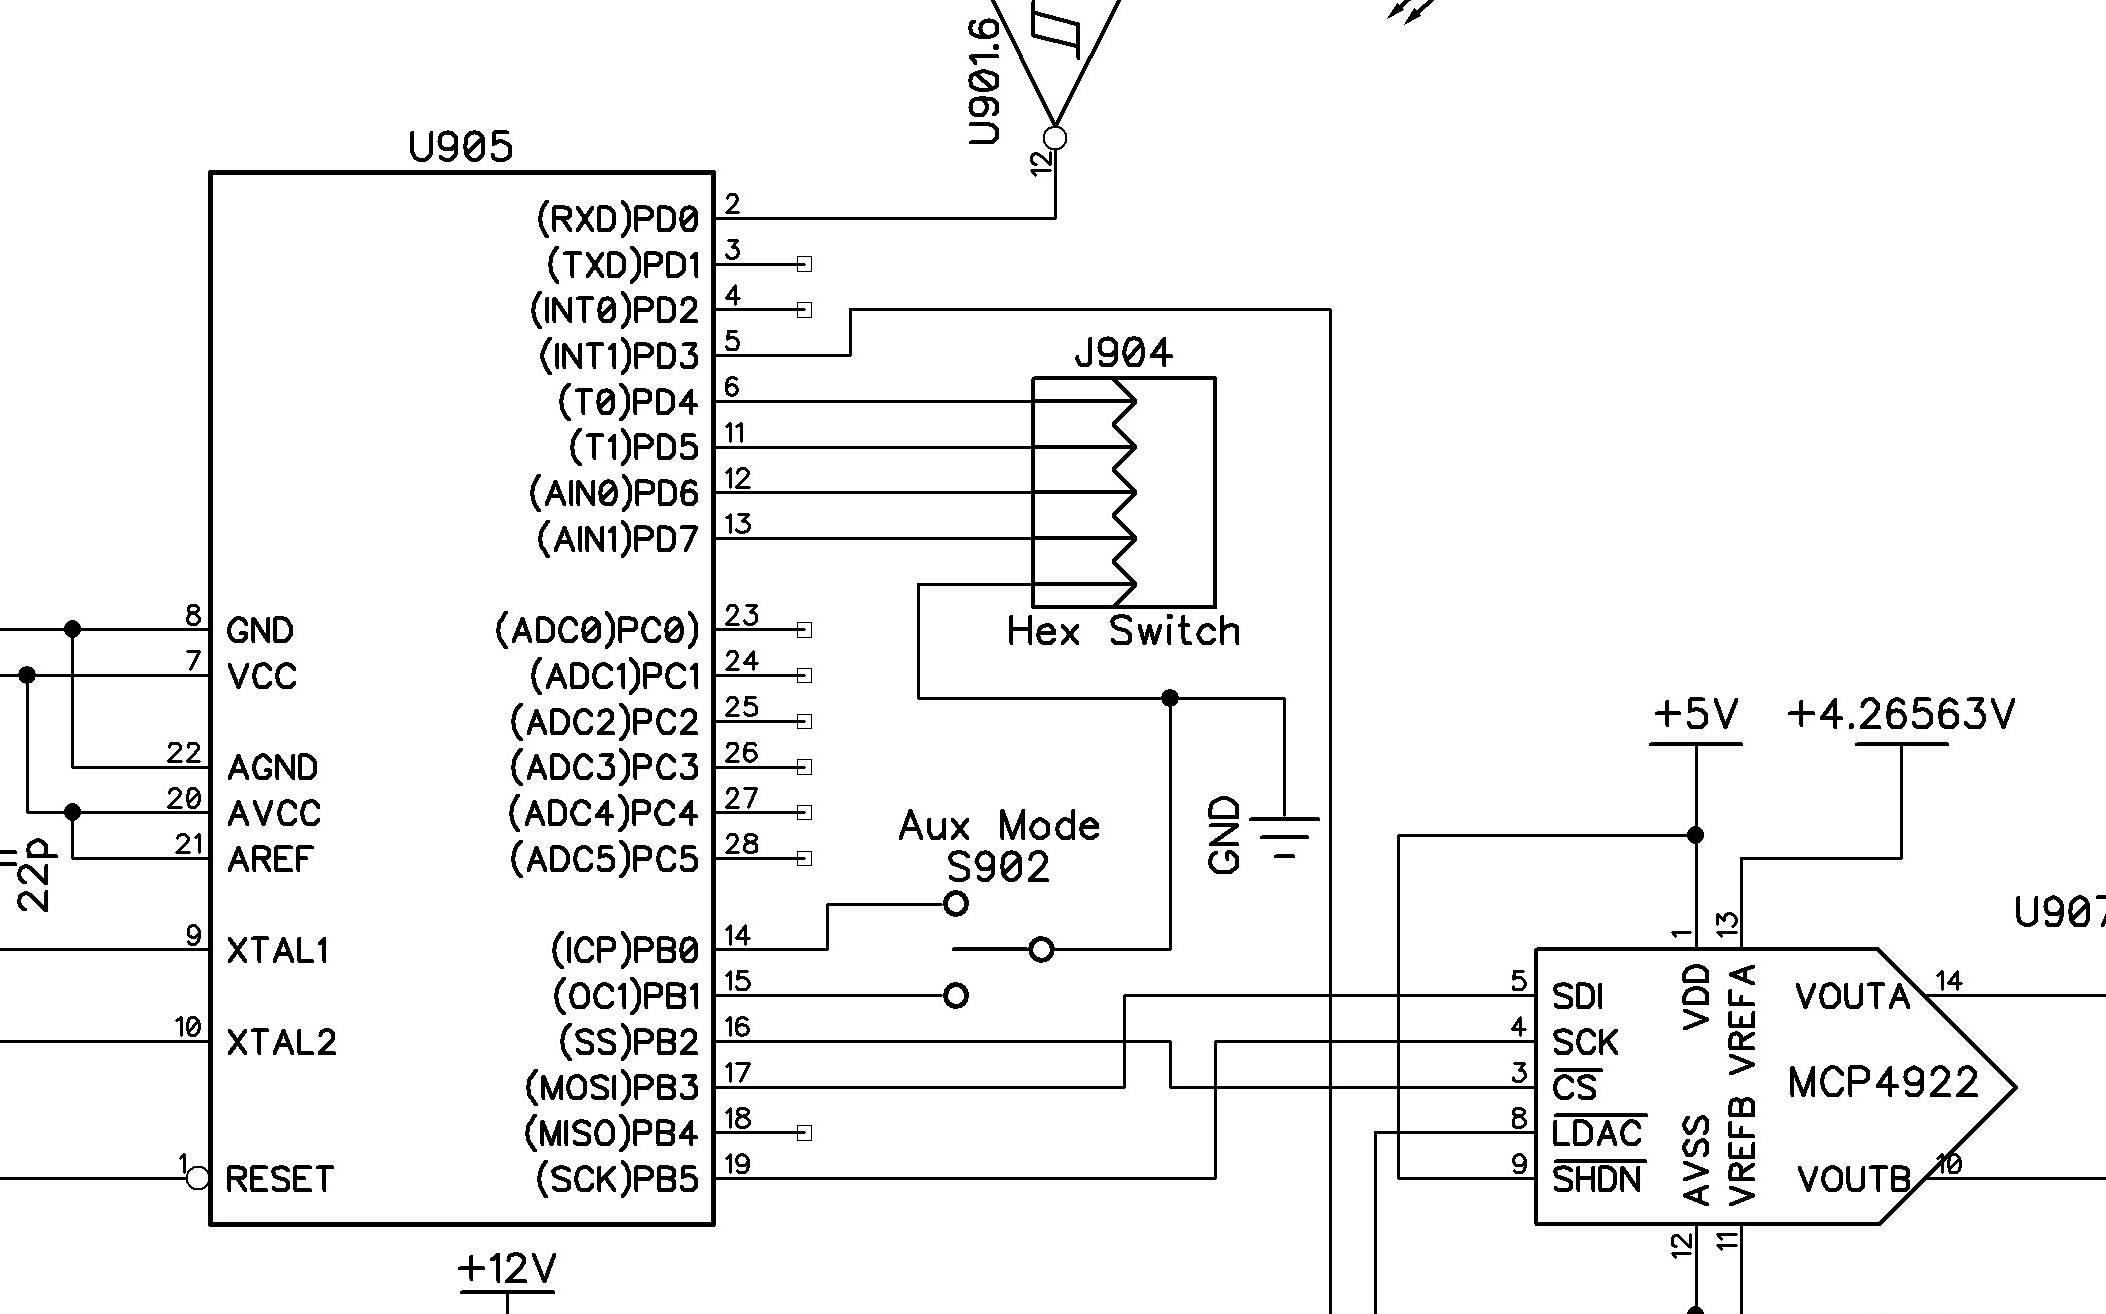 medium resolution of pulse power amplifier circuit diagram tradeoficcom wiring diagram go dcstabilized inverting amplifier circuit diagram tradeoficcom dcstabilized